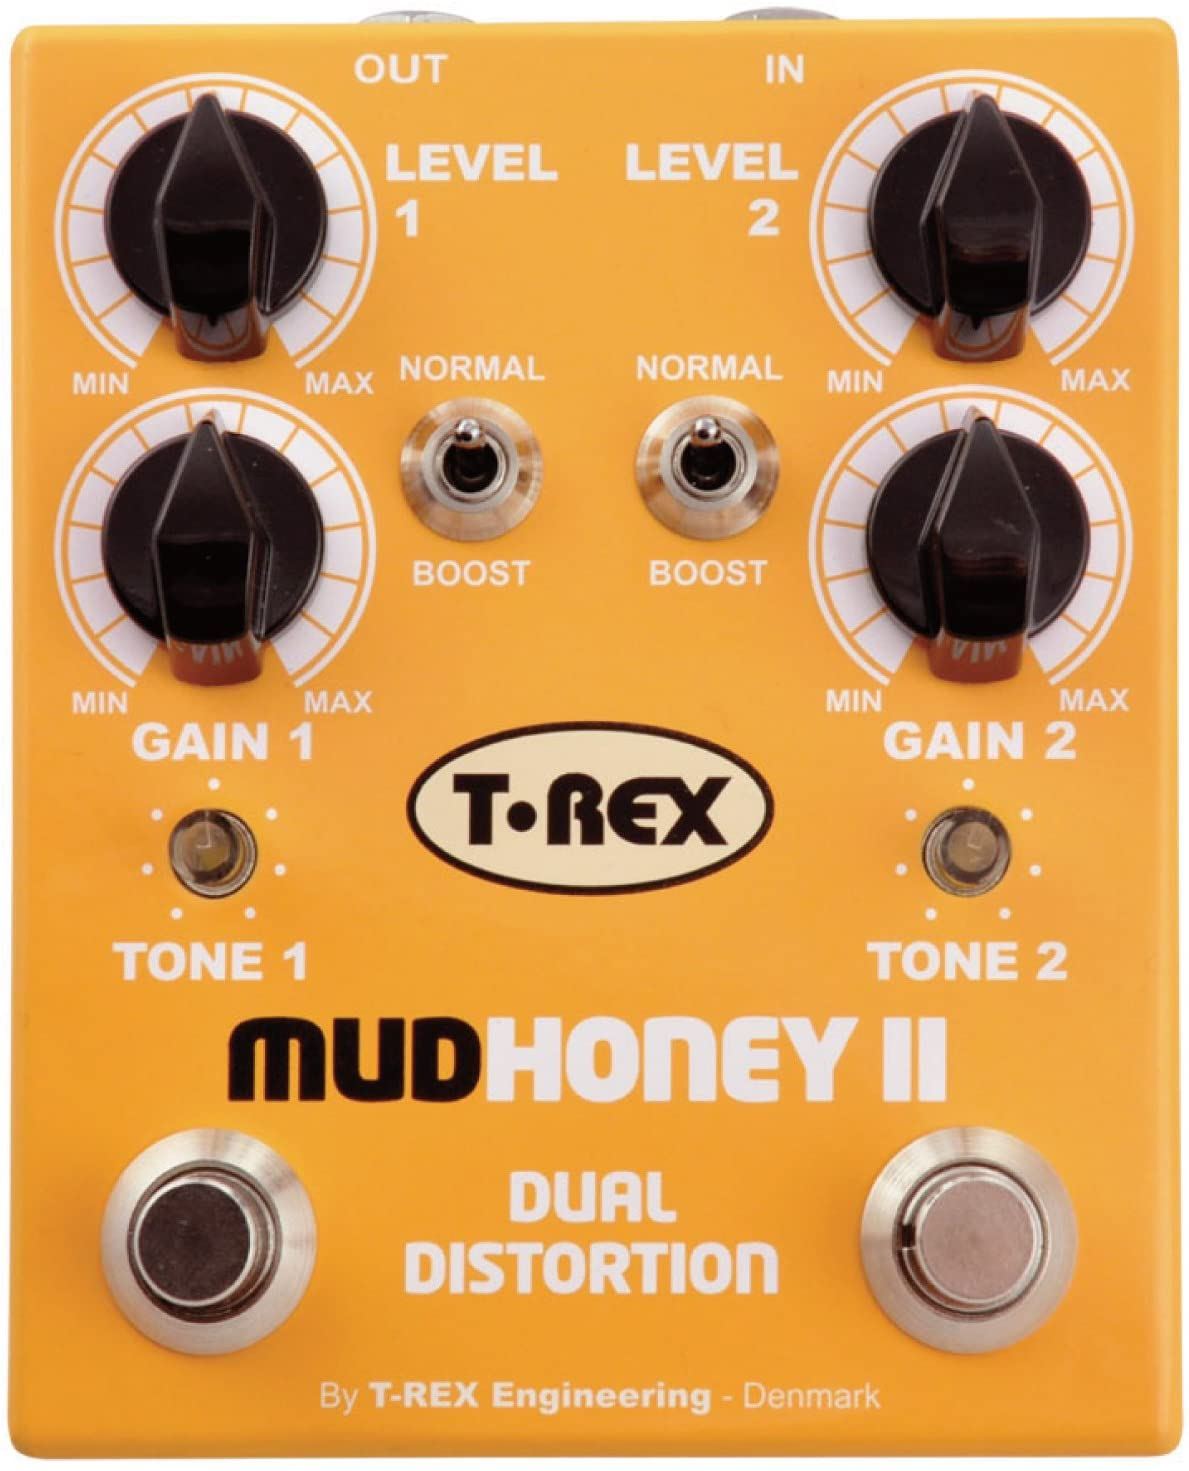 T-Rex Engineering MUDHONEY-II Dual Distortion Guitar Effects Pedal with Two Independent Channels of Vintage Gain Dual Distortion; Individual Boost Function and Tone Controls for Each Channel (10020)